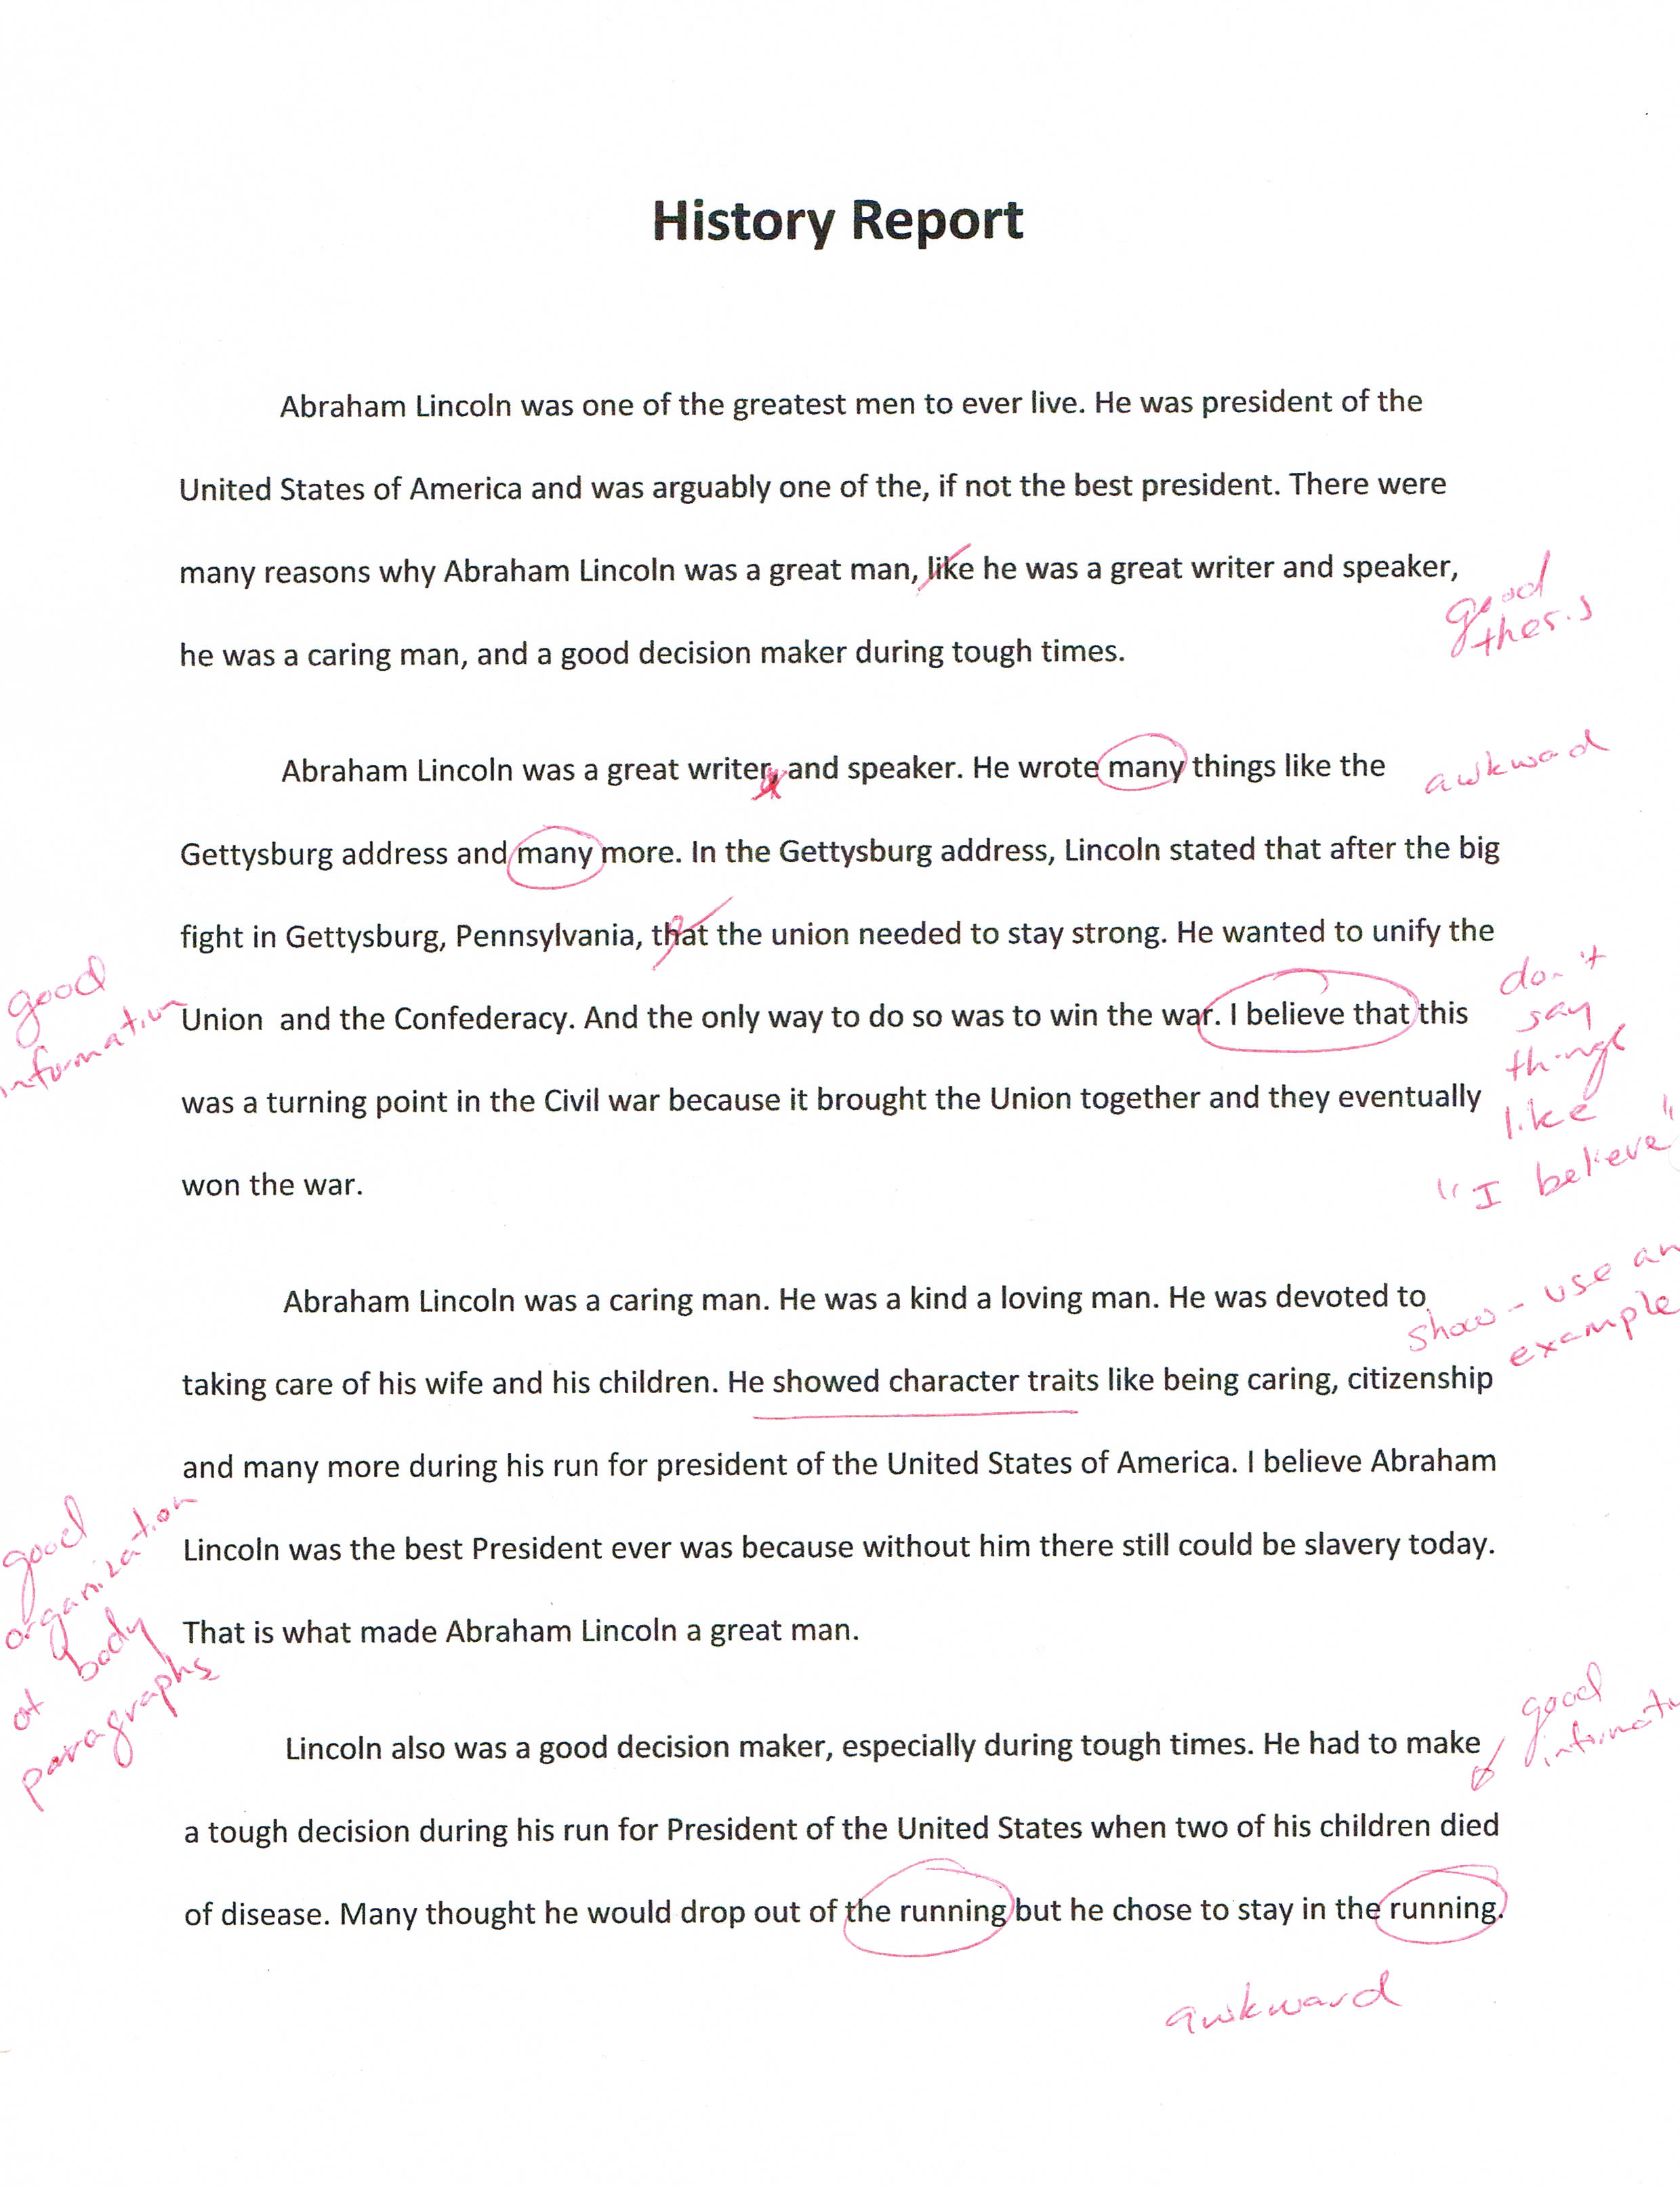 Gladiator introduction essay